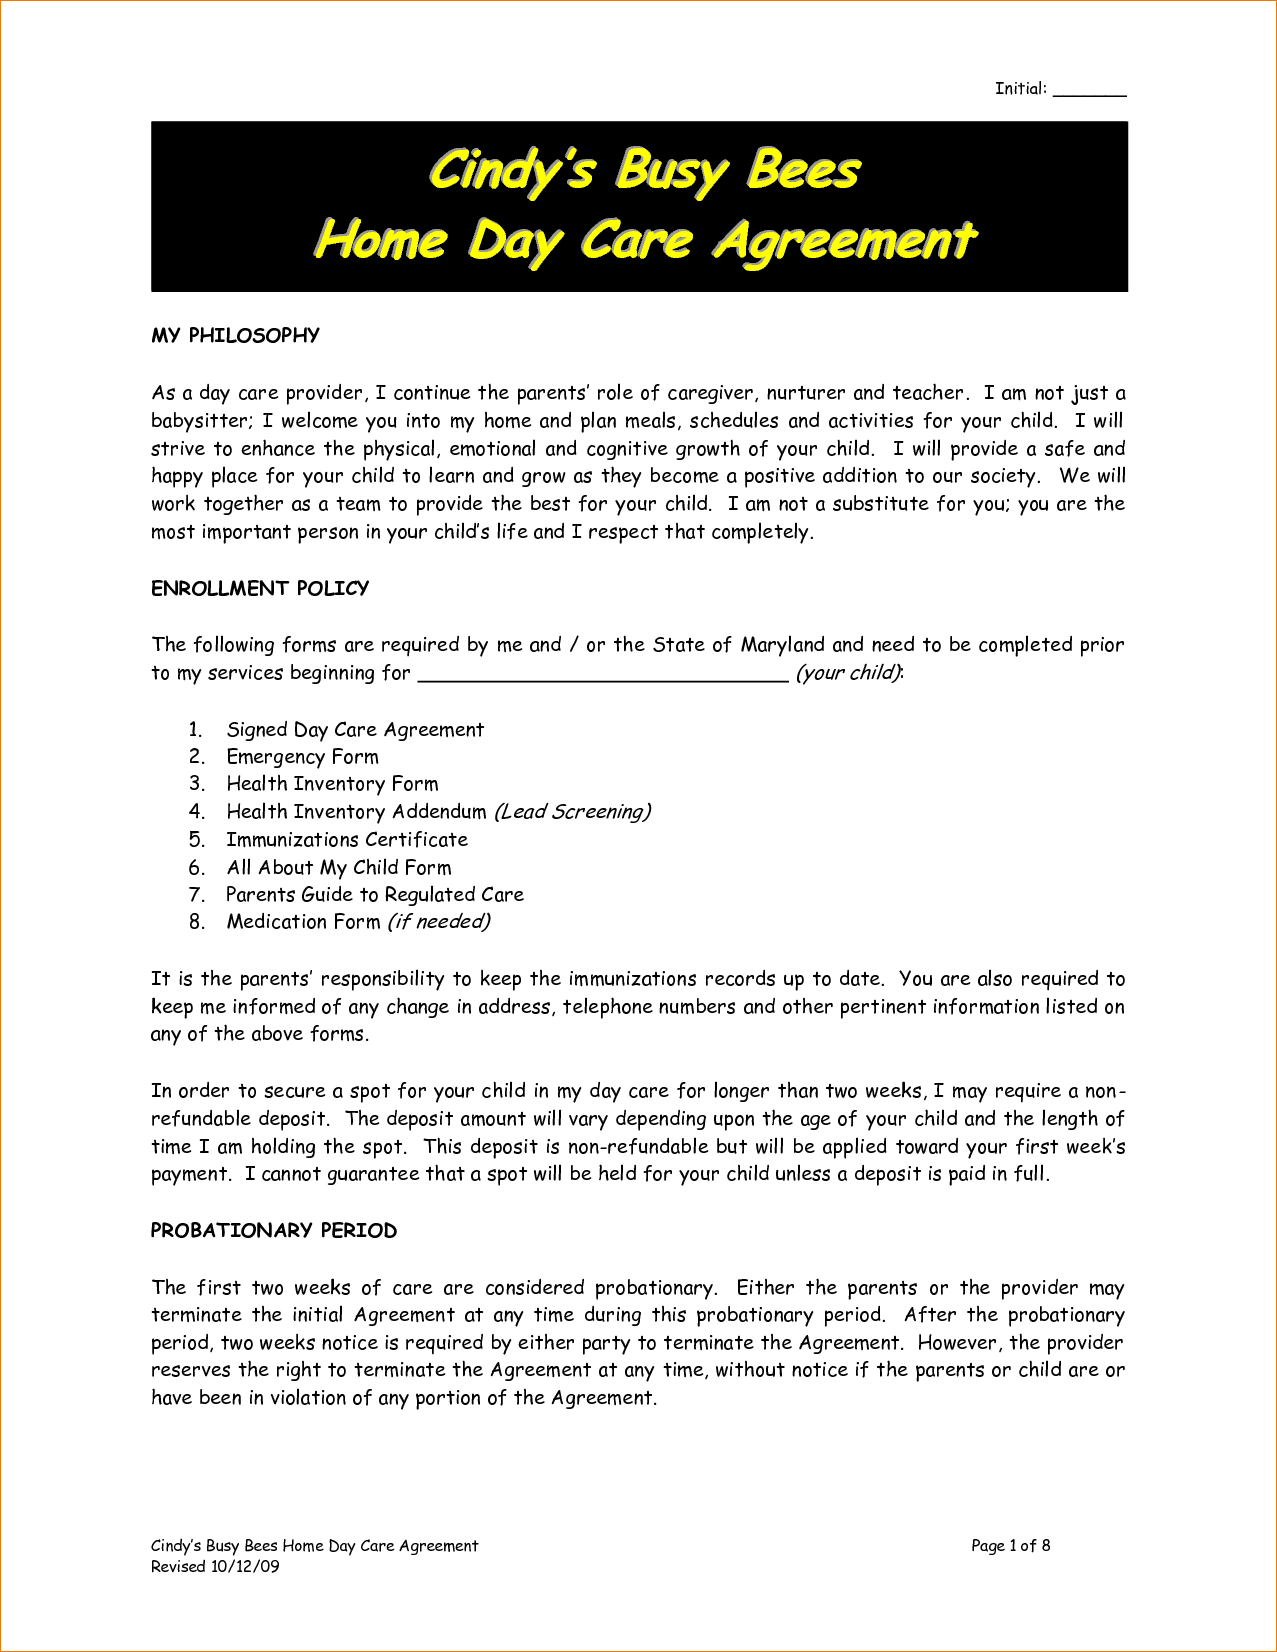 Daycare contract sample 2 by nrk14057 childcare ideas pinterest daycare contract sample 2 by nrk14057 altavistaventures Image collections